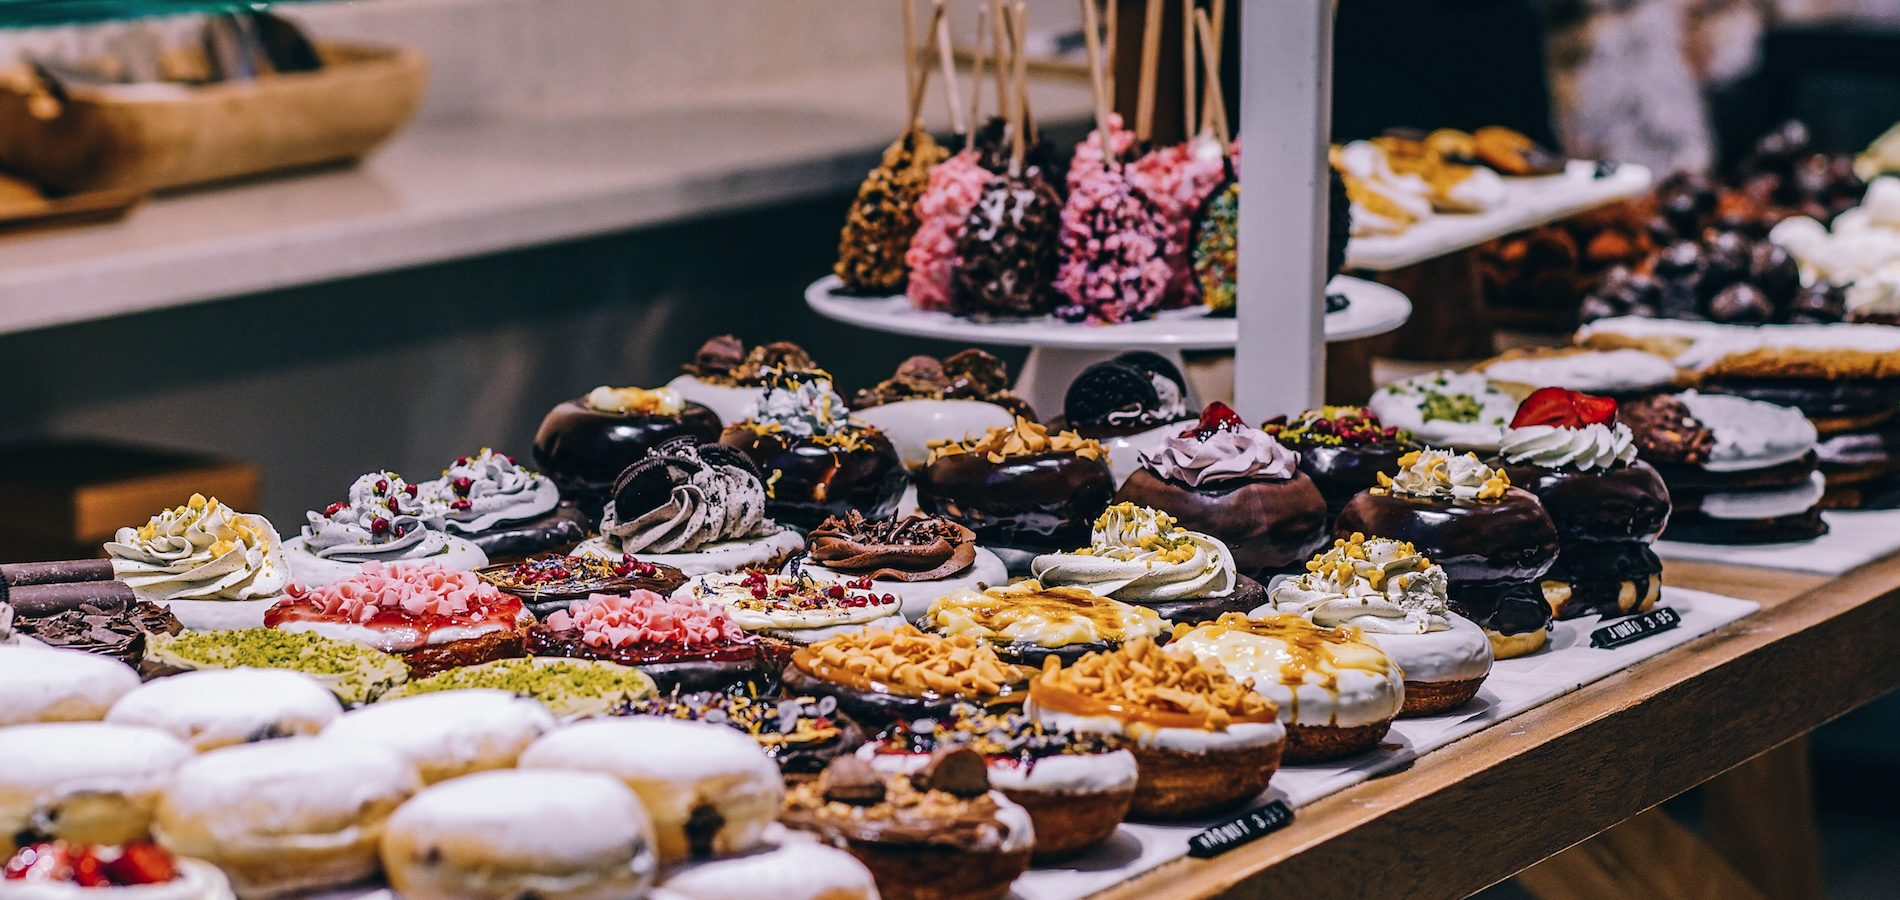 What Does Judaism Say About Overeating?